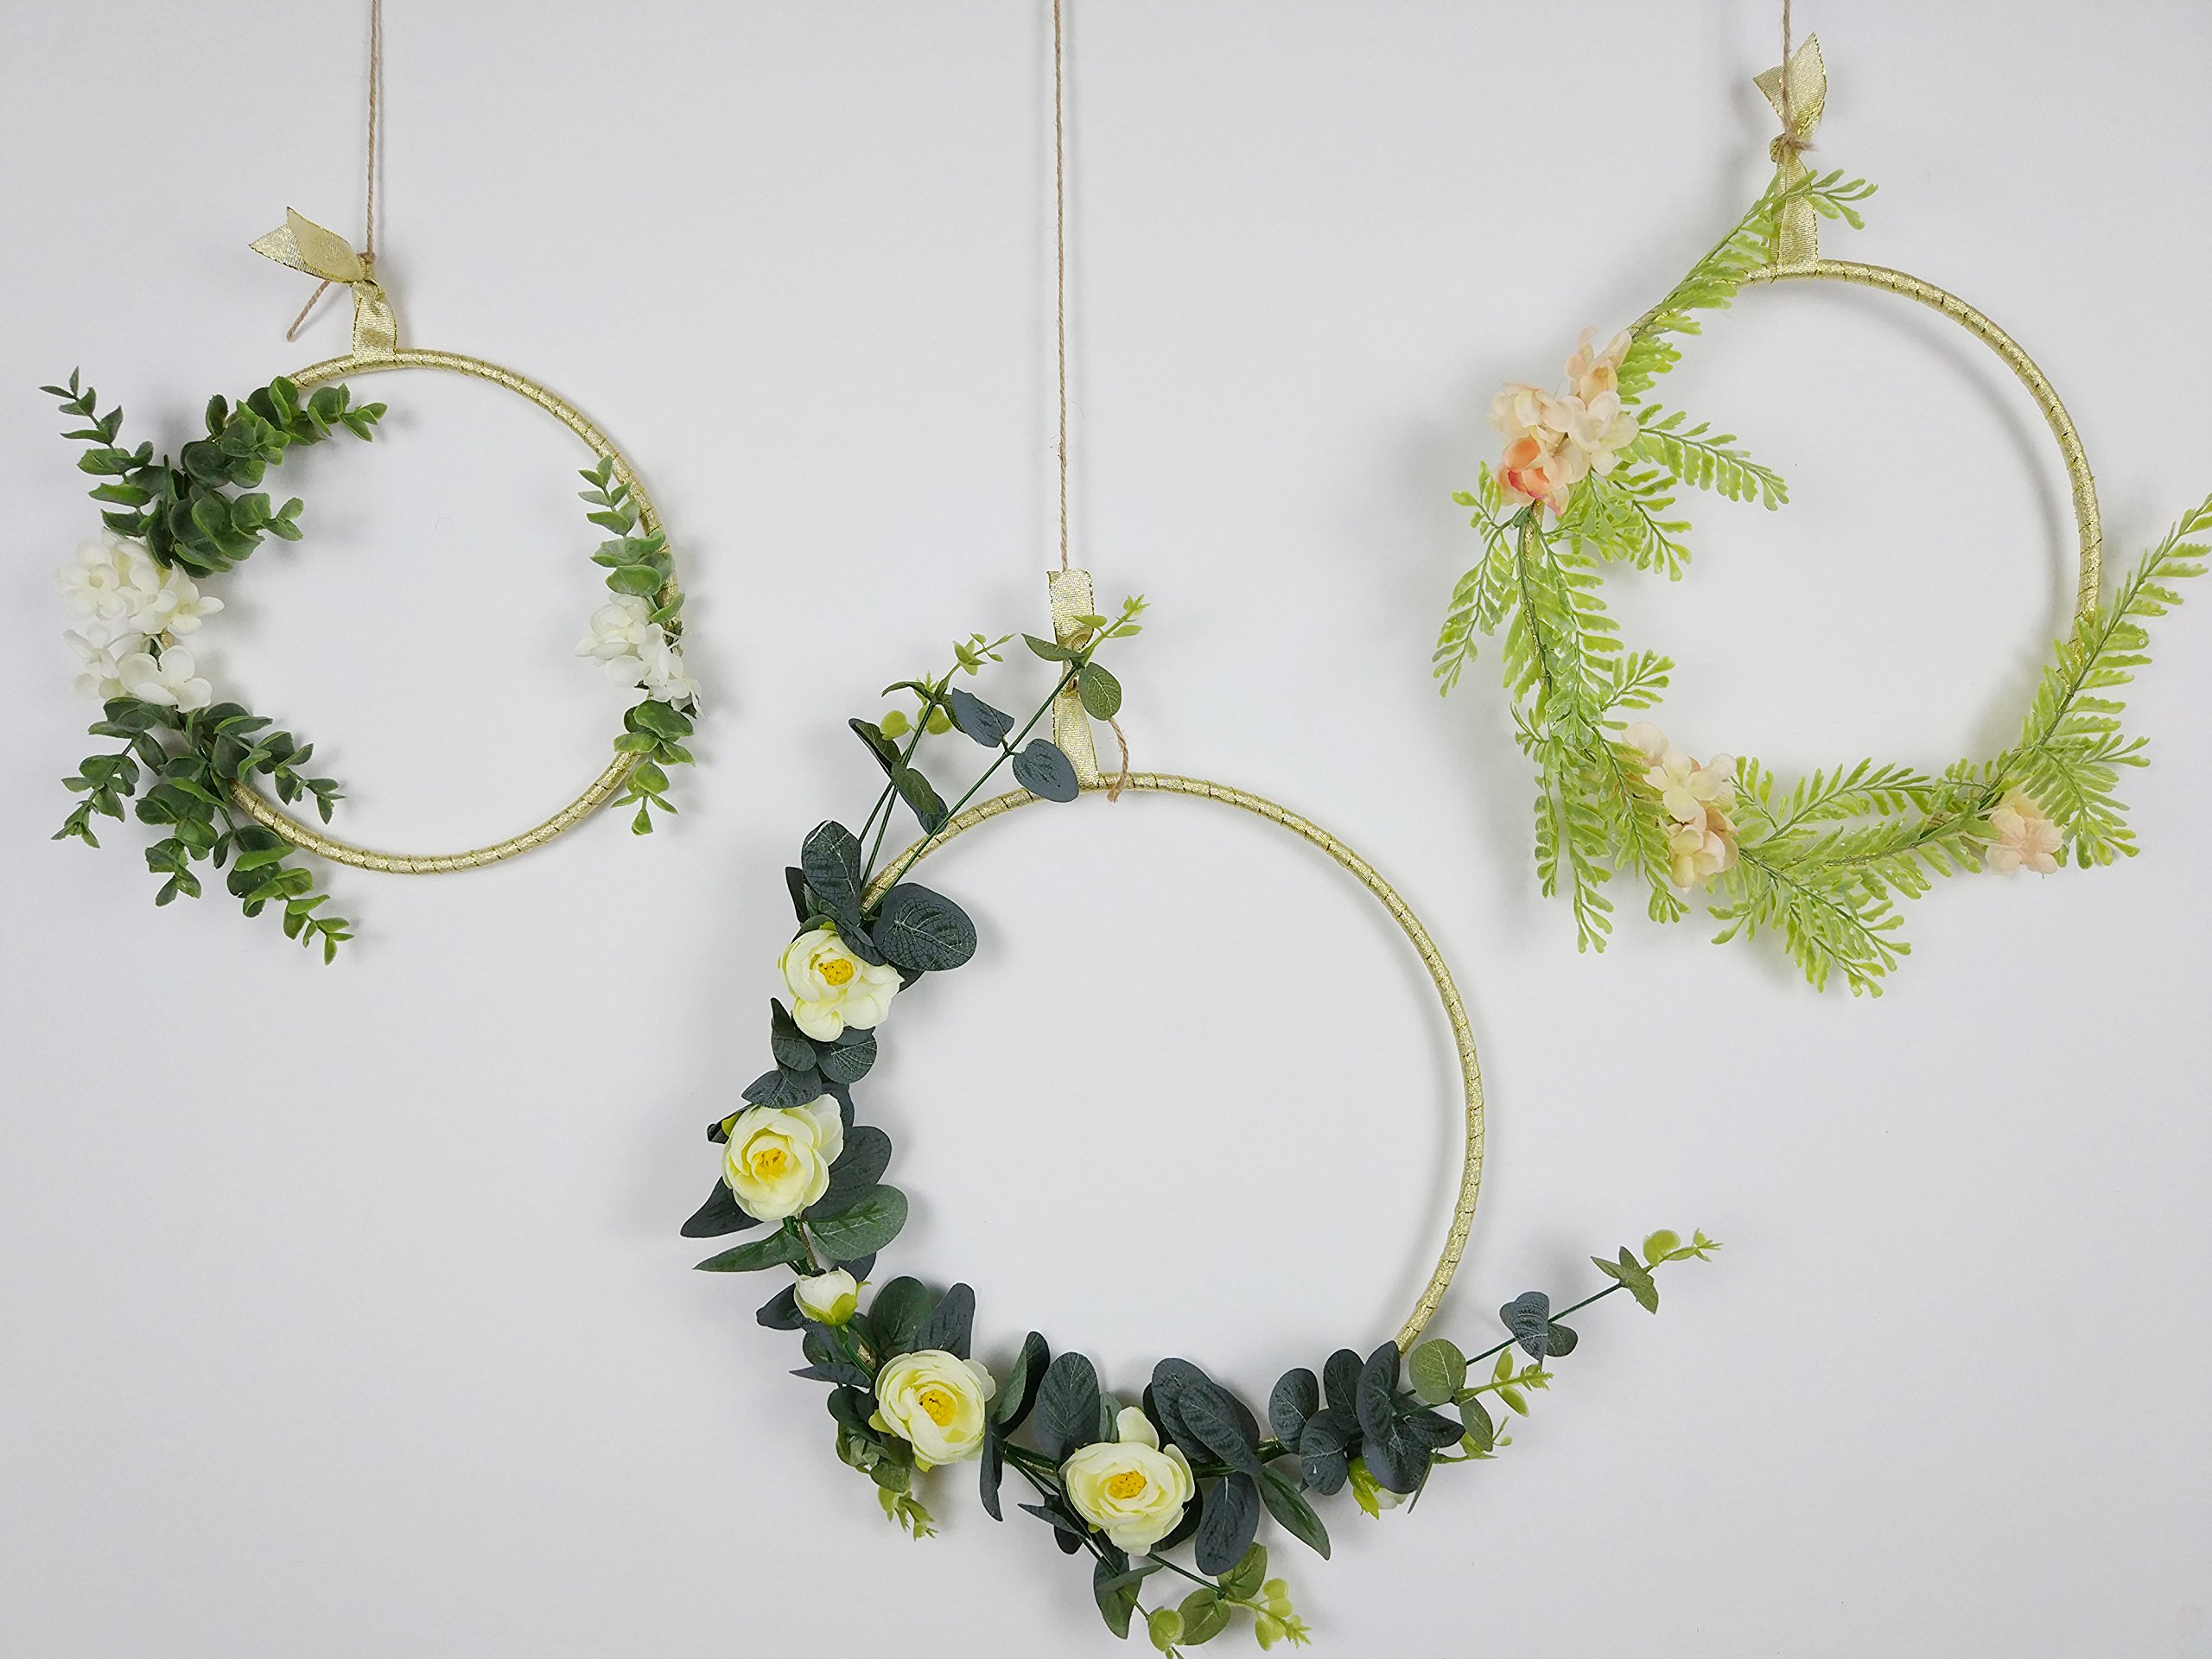 3059f8e419ee4 RISEON Handmade Set of 3 Gold Flower Wreaths,Boho Dream Catcher,Rustic  Wedding Backdrop, Artificial Plant Vine Greenery Flower Garland, Window  Wall ...